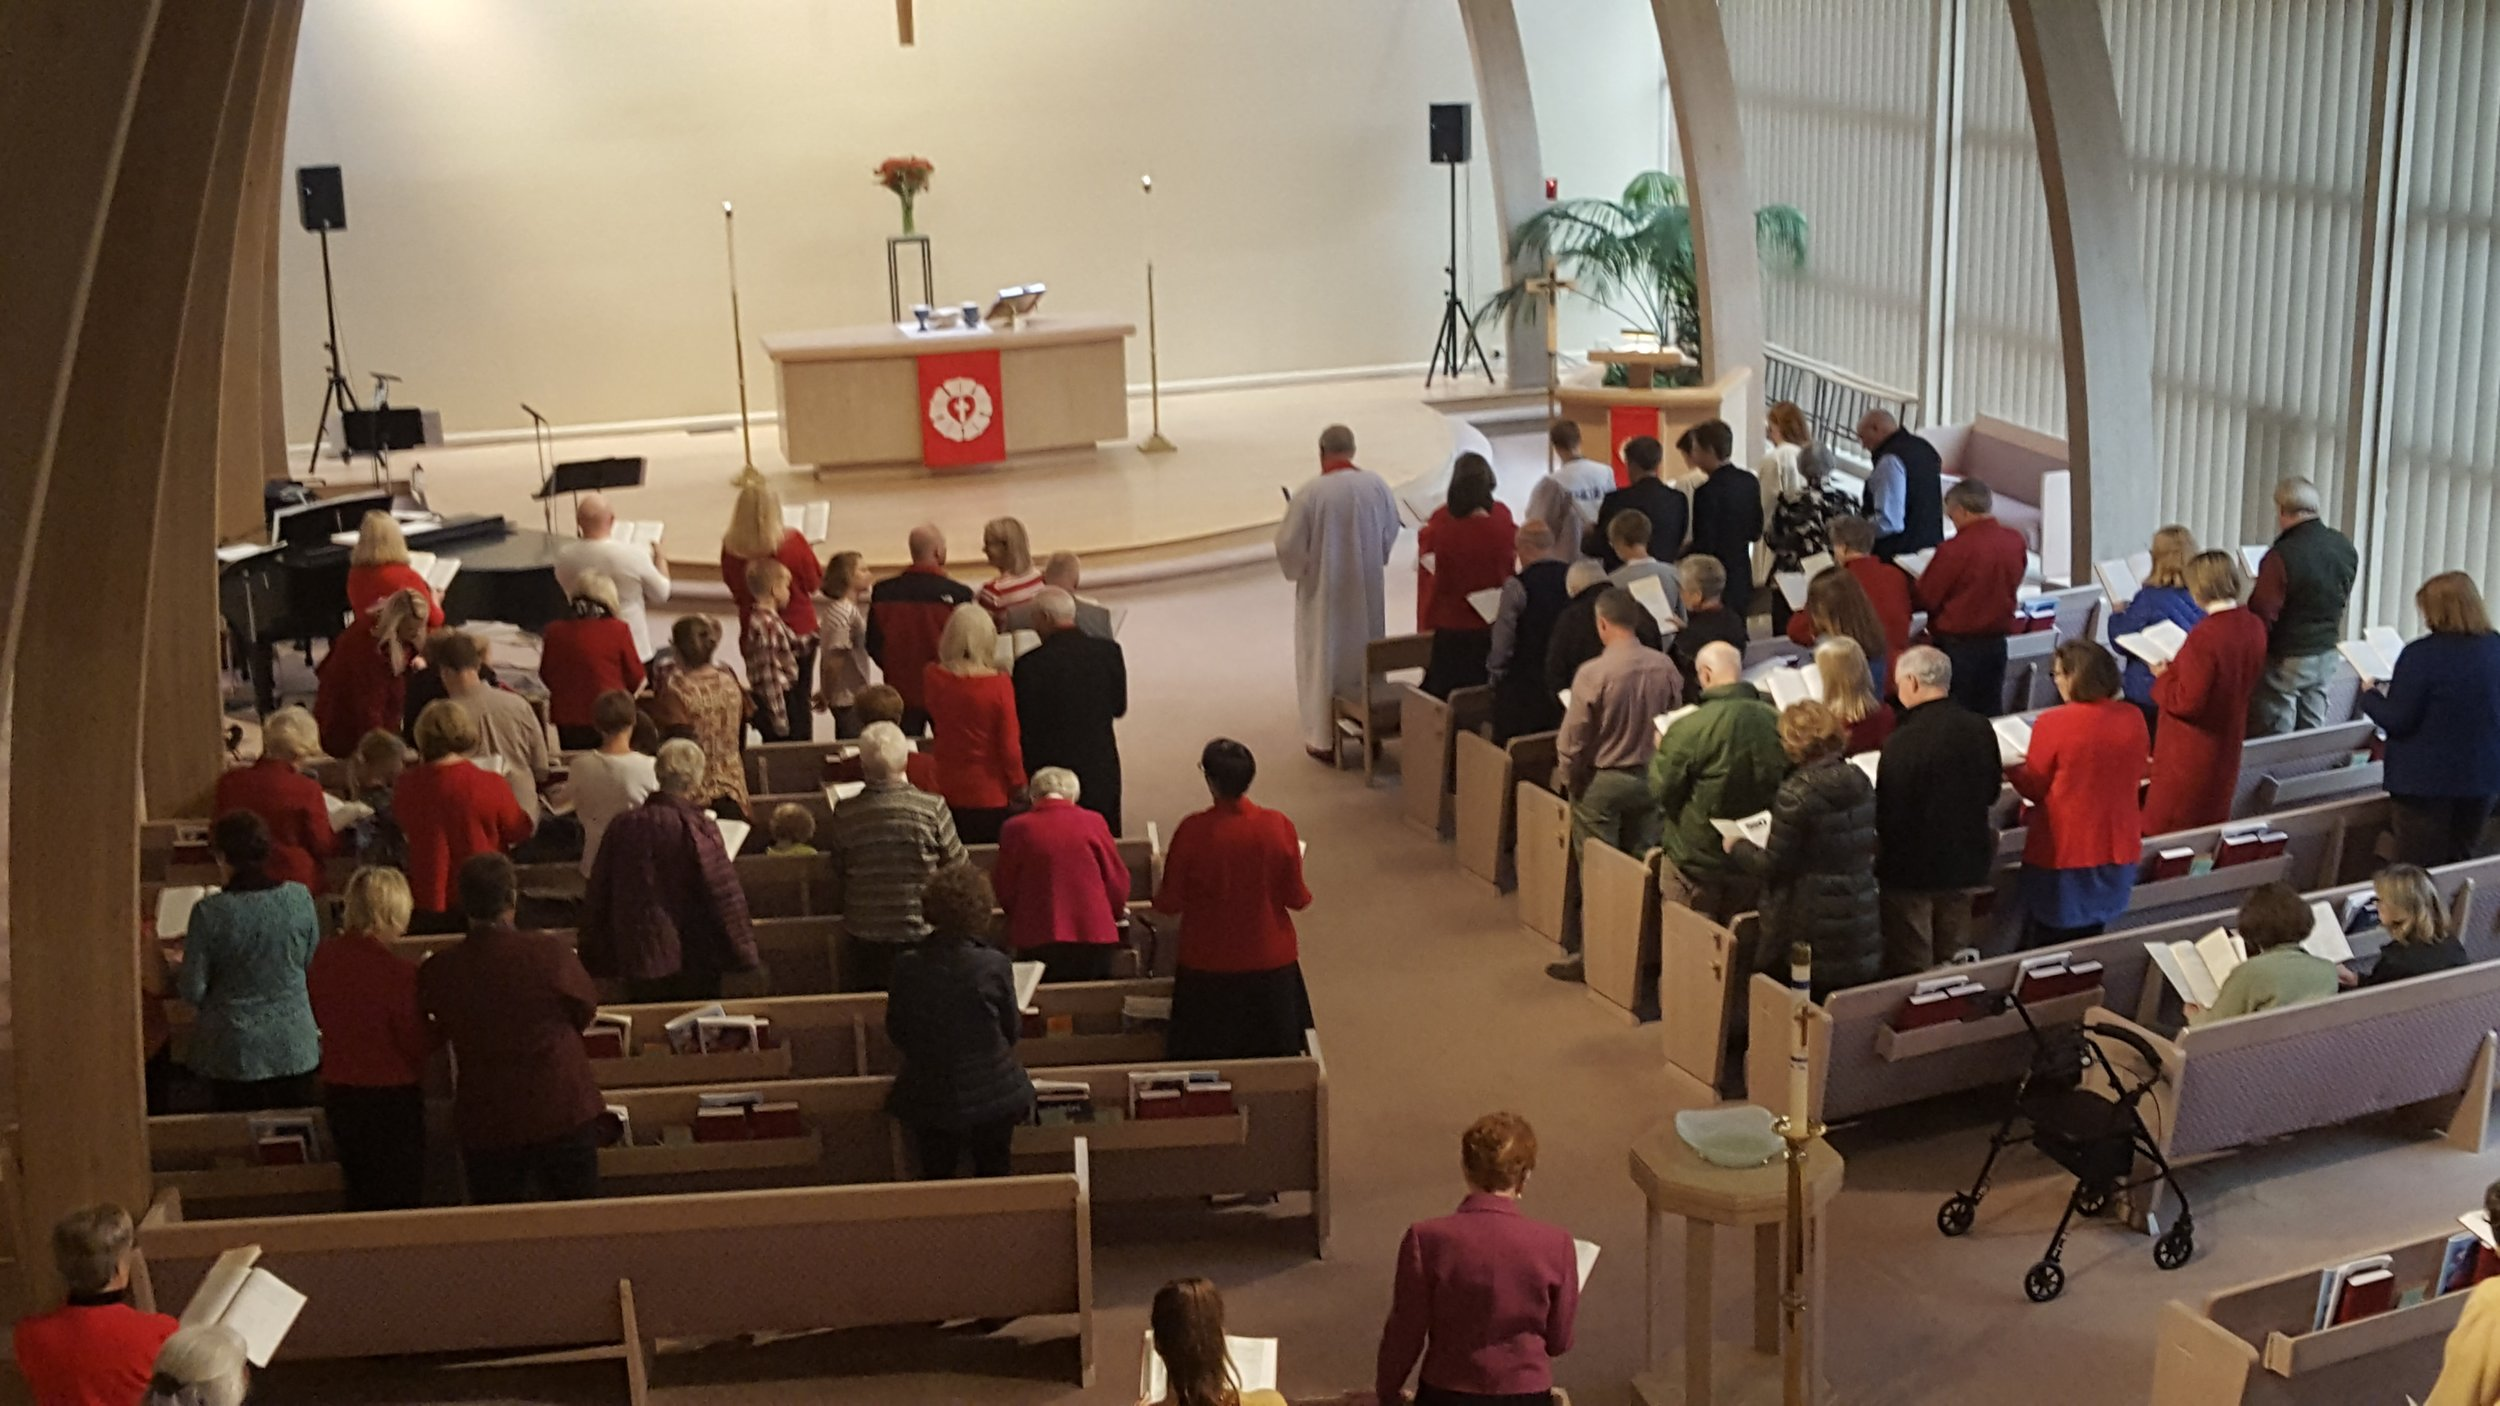 Worship - We gather as a community of believers on Sunday mornings at 8 a.m. in the Chapel and 10 a.m. in the Sanctuary to hear God's word, sing and pray together.Learn More